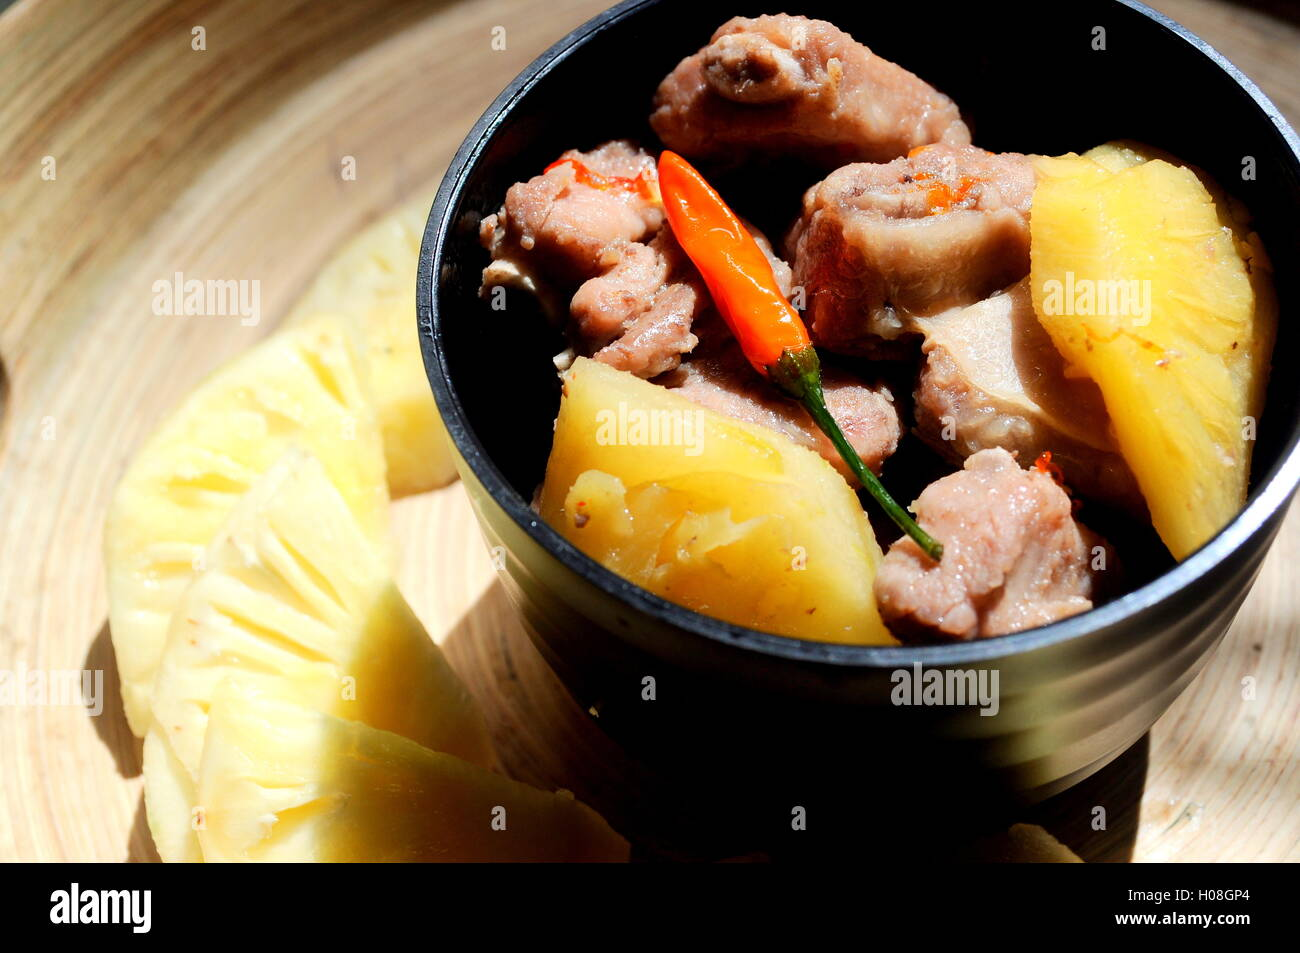 Pork ribs with pineapple - Stock Image